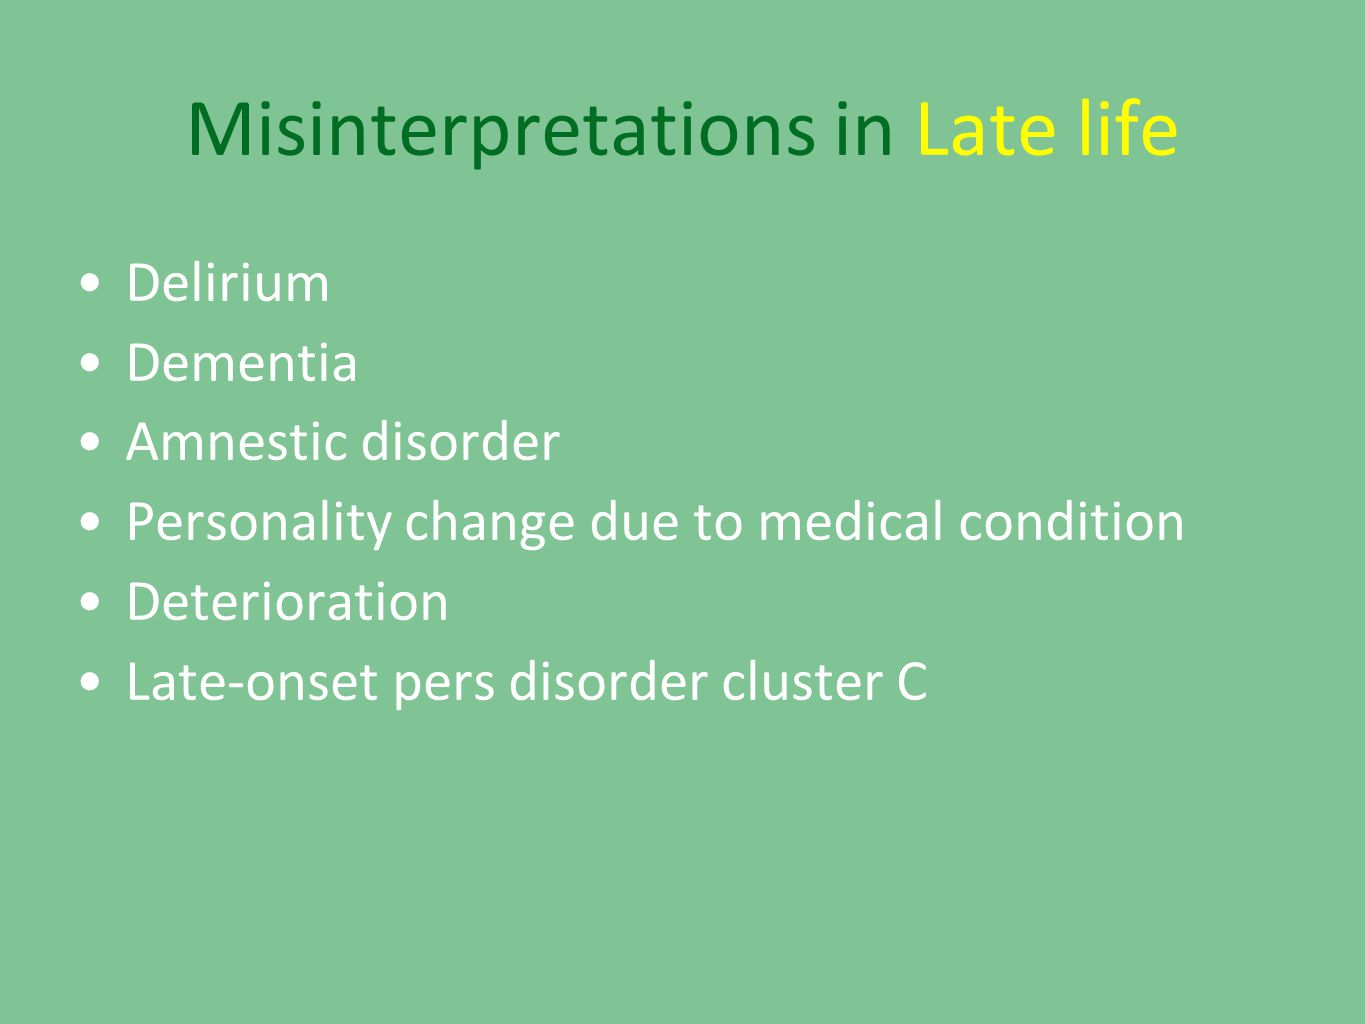 Misinterpretations in Late life •Delirium •Dementia •Amnestic disorder •Personality change due to medical condition •Deterioration •Late-onset pers disorder cluster C